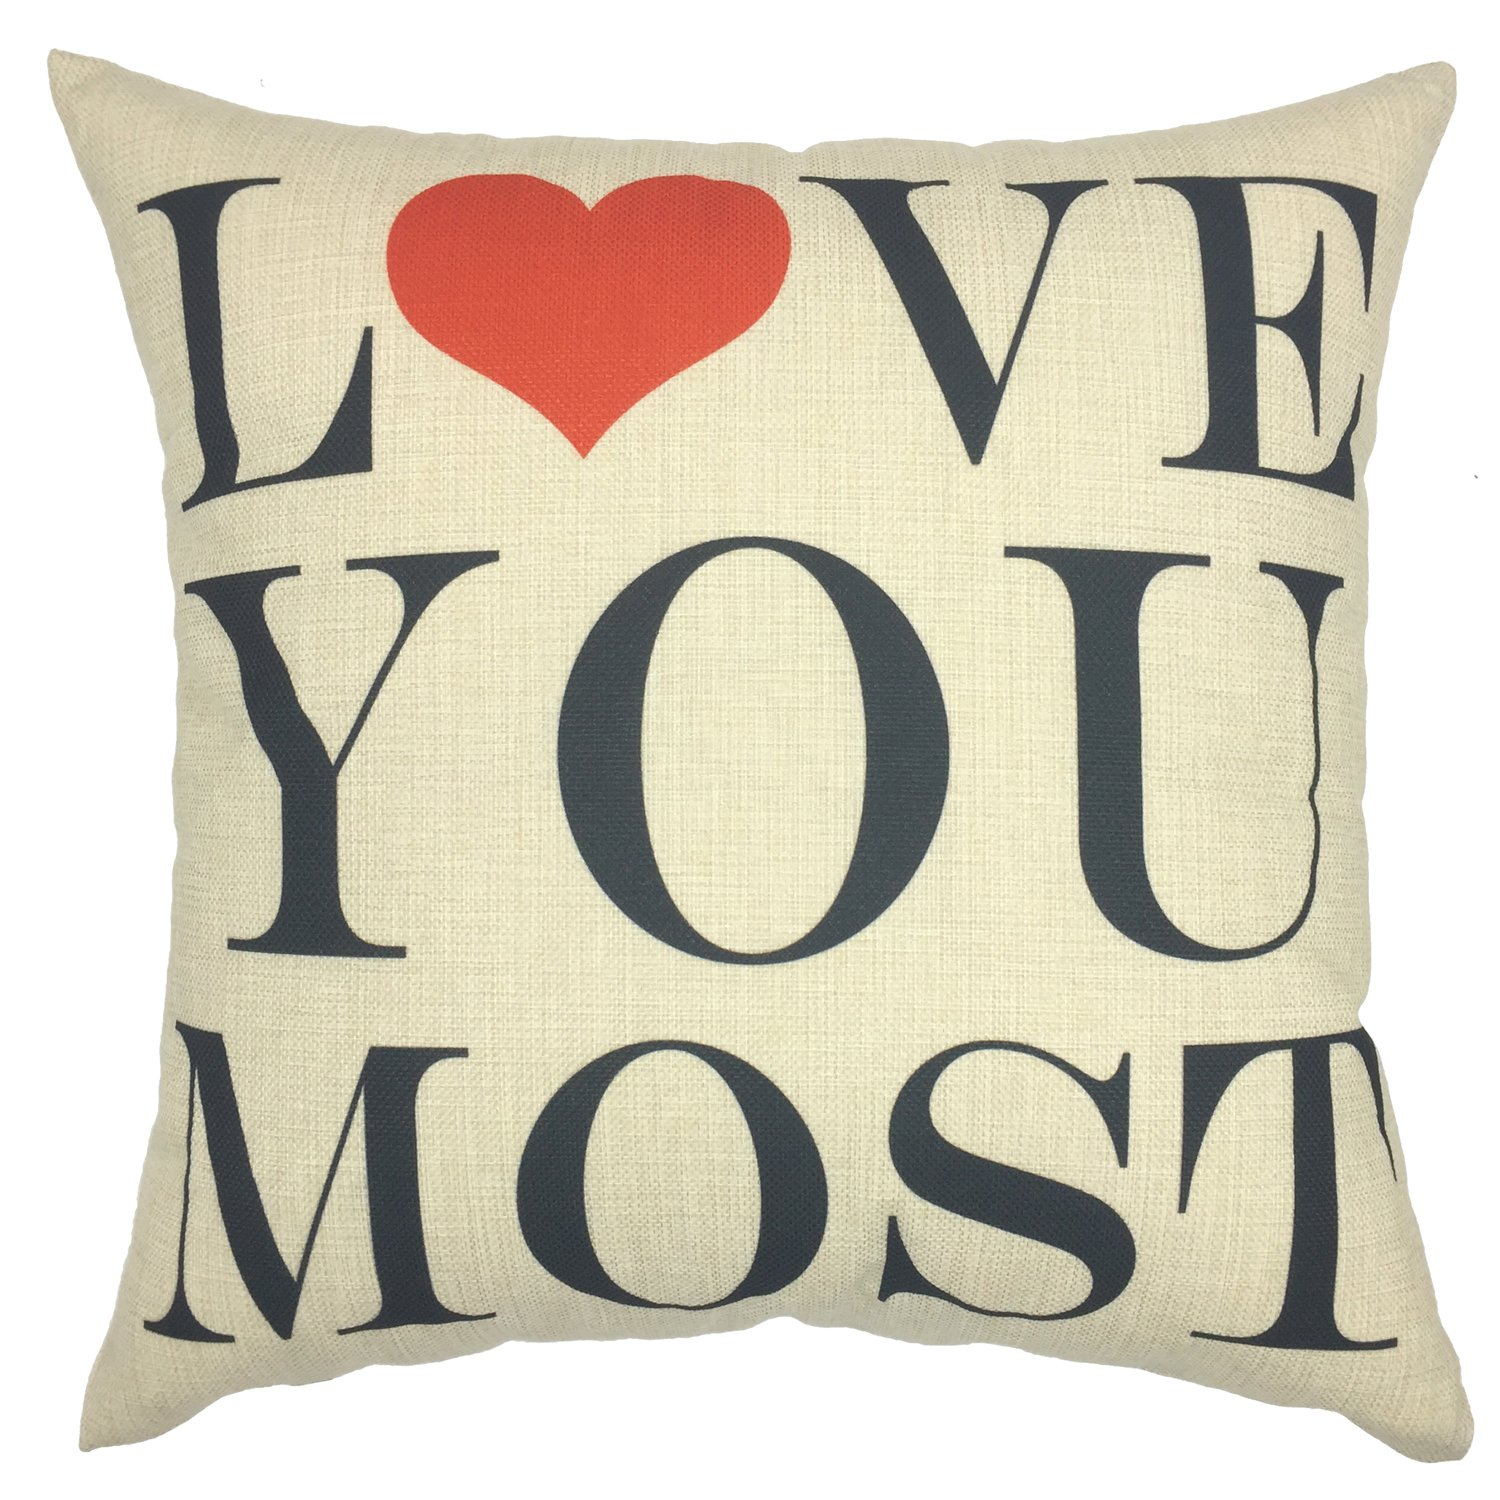 Unique Throw Pillow Covers 18x18 : Cotton Linen Square Decorative Throw Pillow Cushion Cover 18x18 Inch New eBay